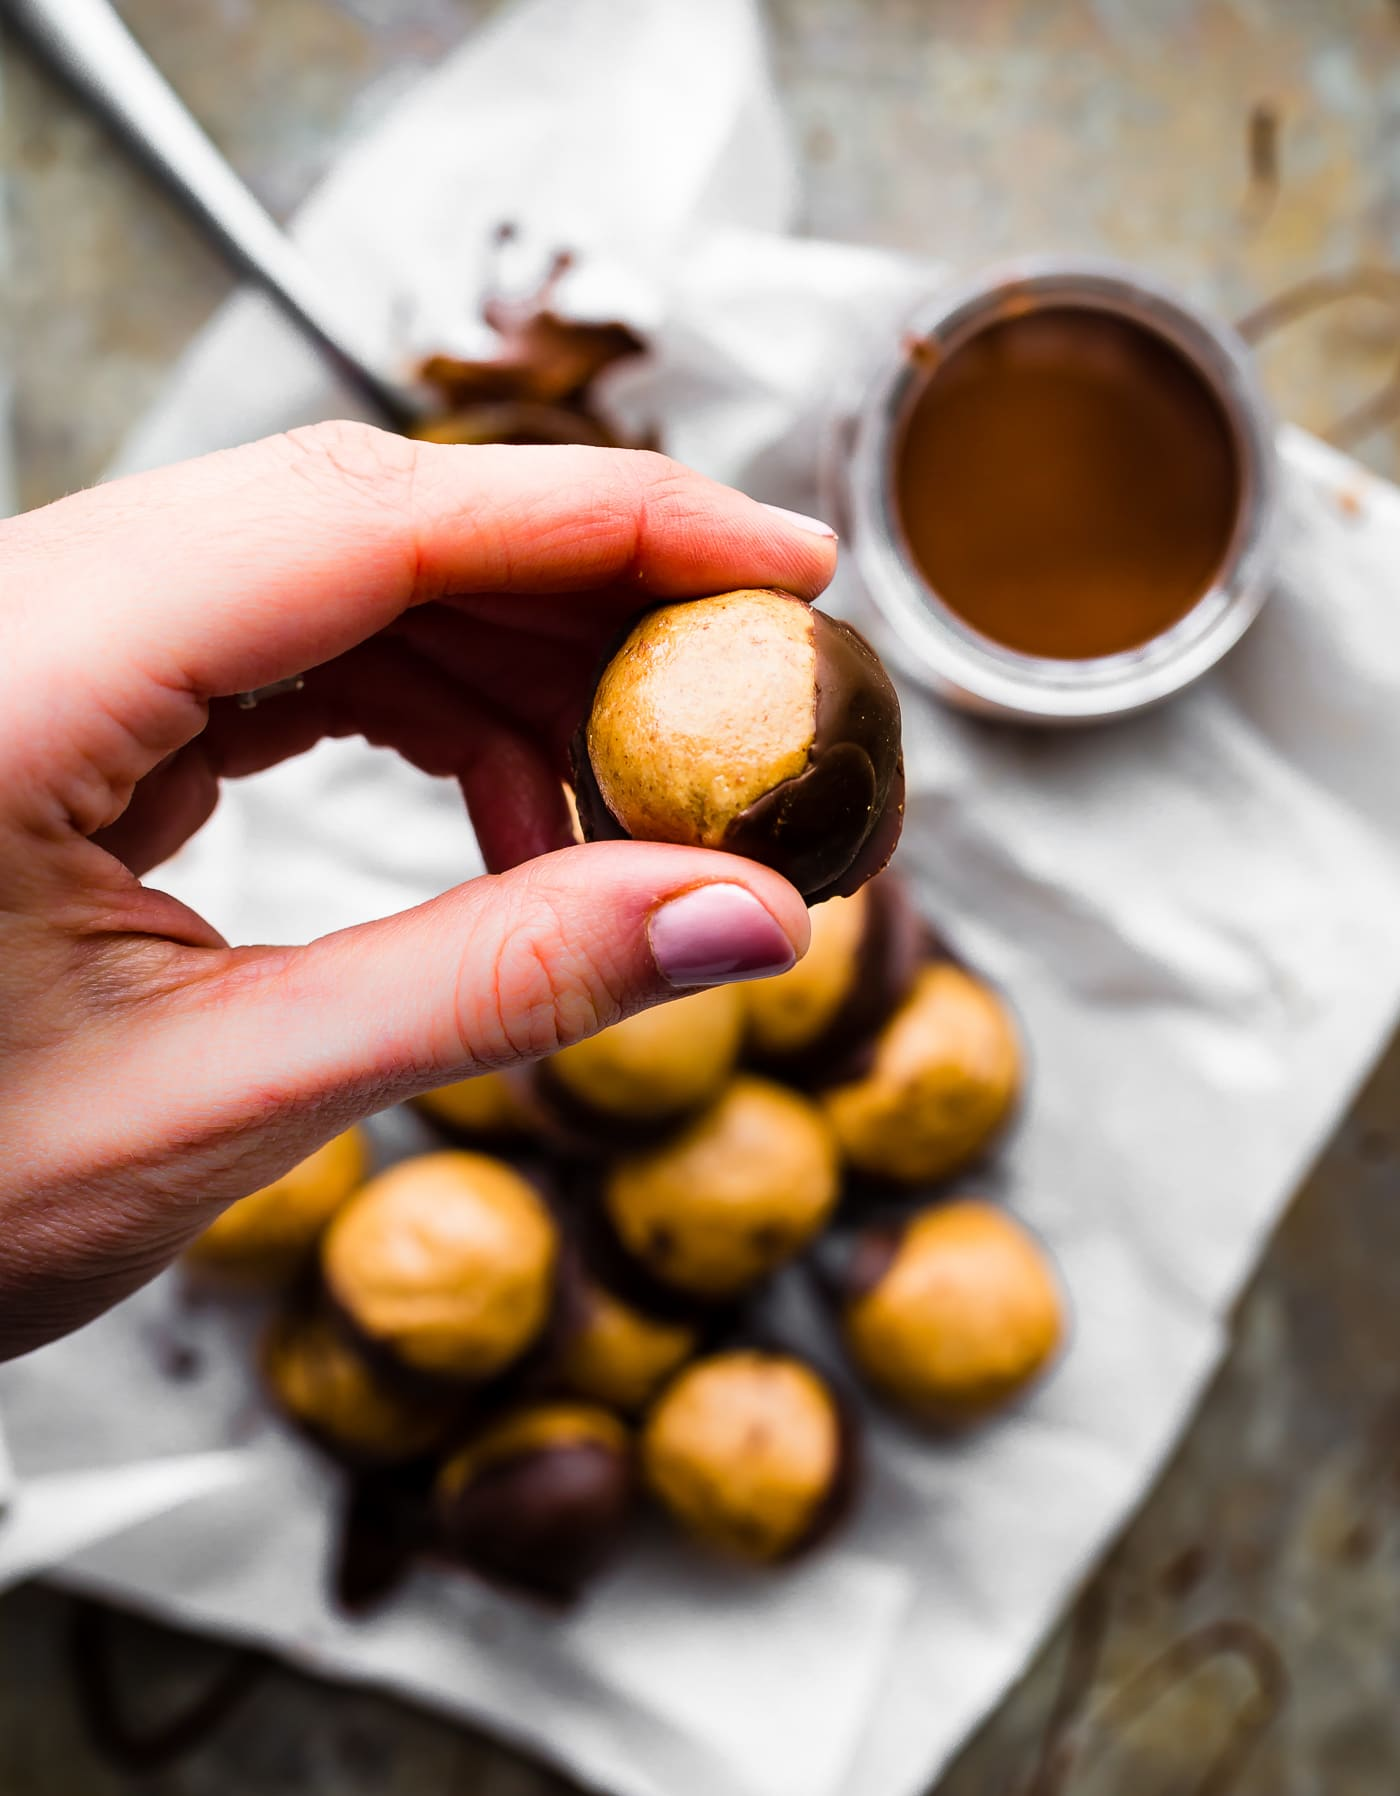 A Buckeyes Recipe Packed with Protein! These Vegan Peanut Butter Protein Buckeyes are super easy to make and coated in dairy free dark chocolate. Gluten free with a Paleo option. A classic Buckeyes Recipe with a healthy boost! No baking required! www.cottercrunch.com